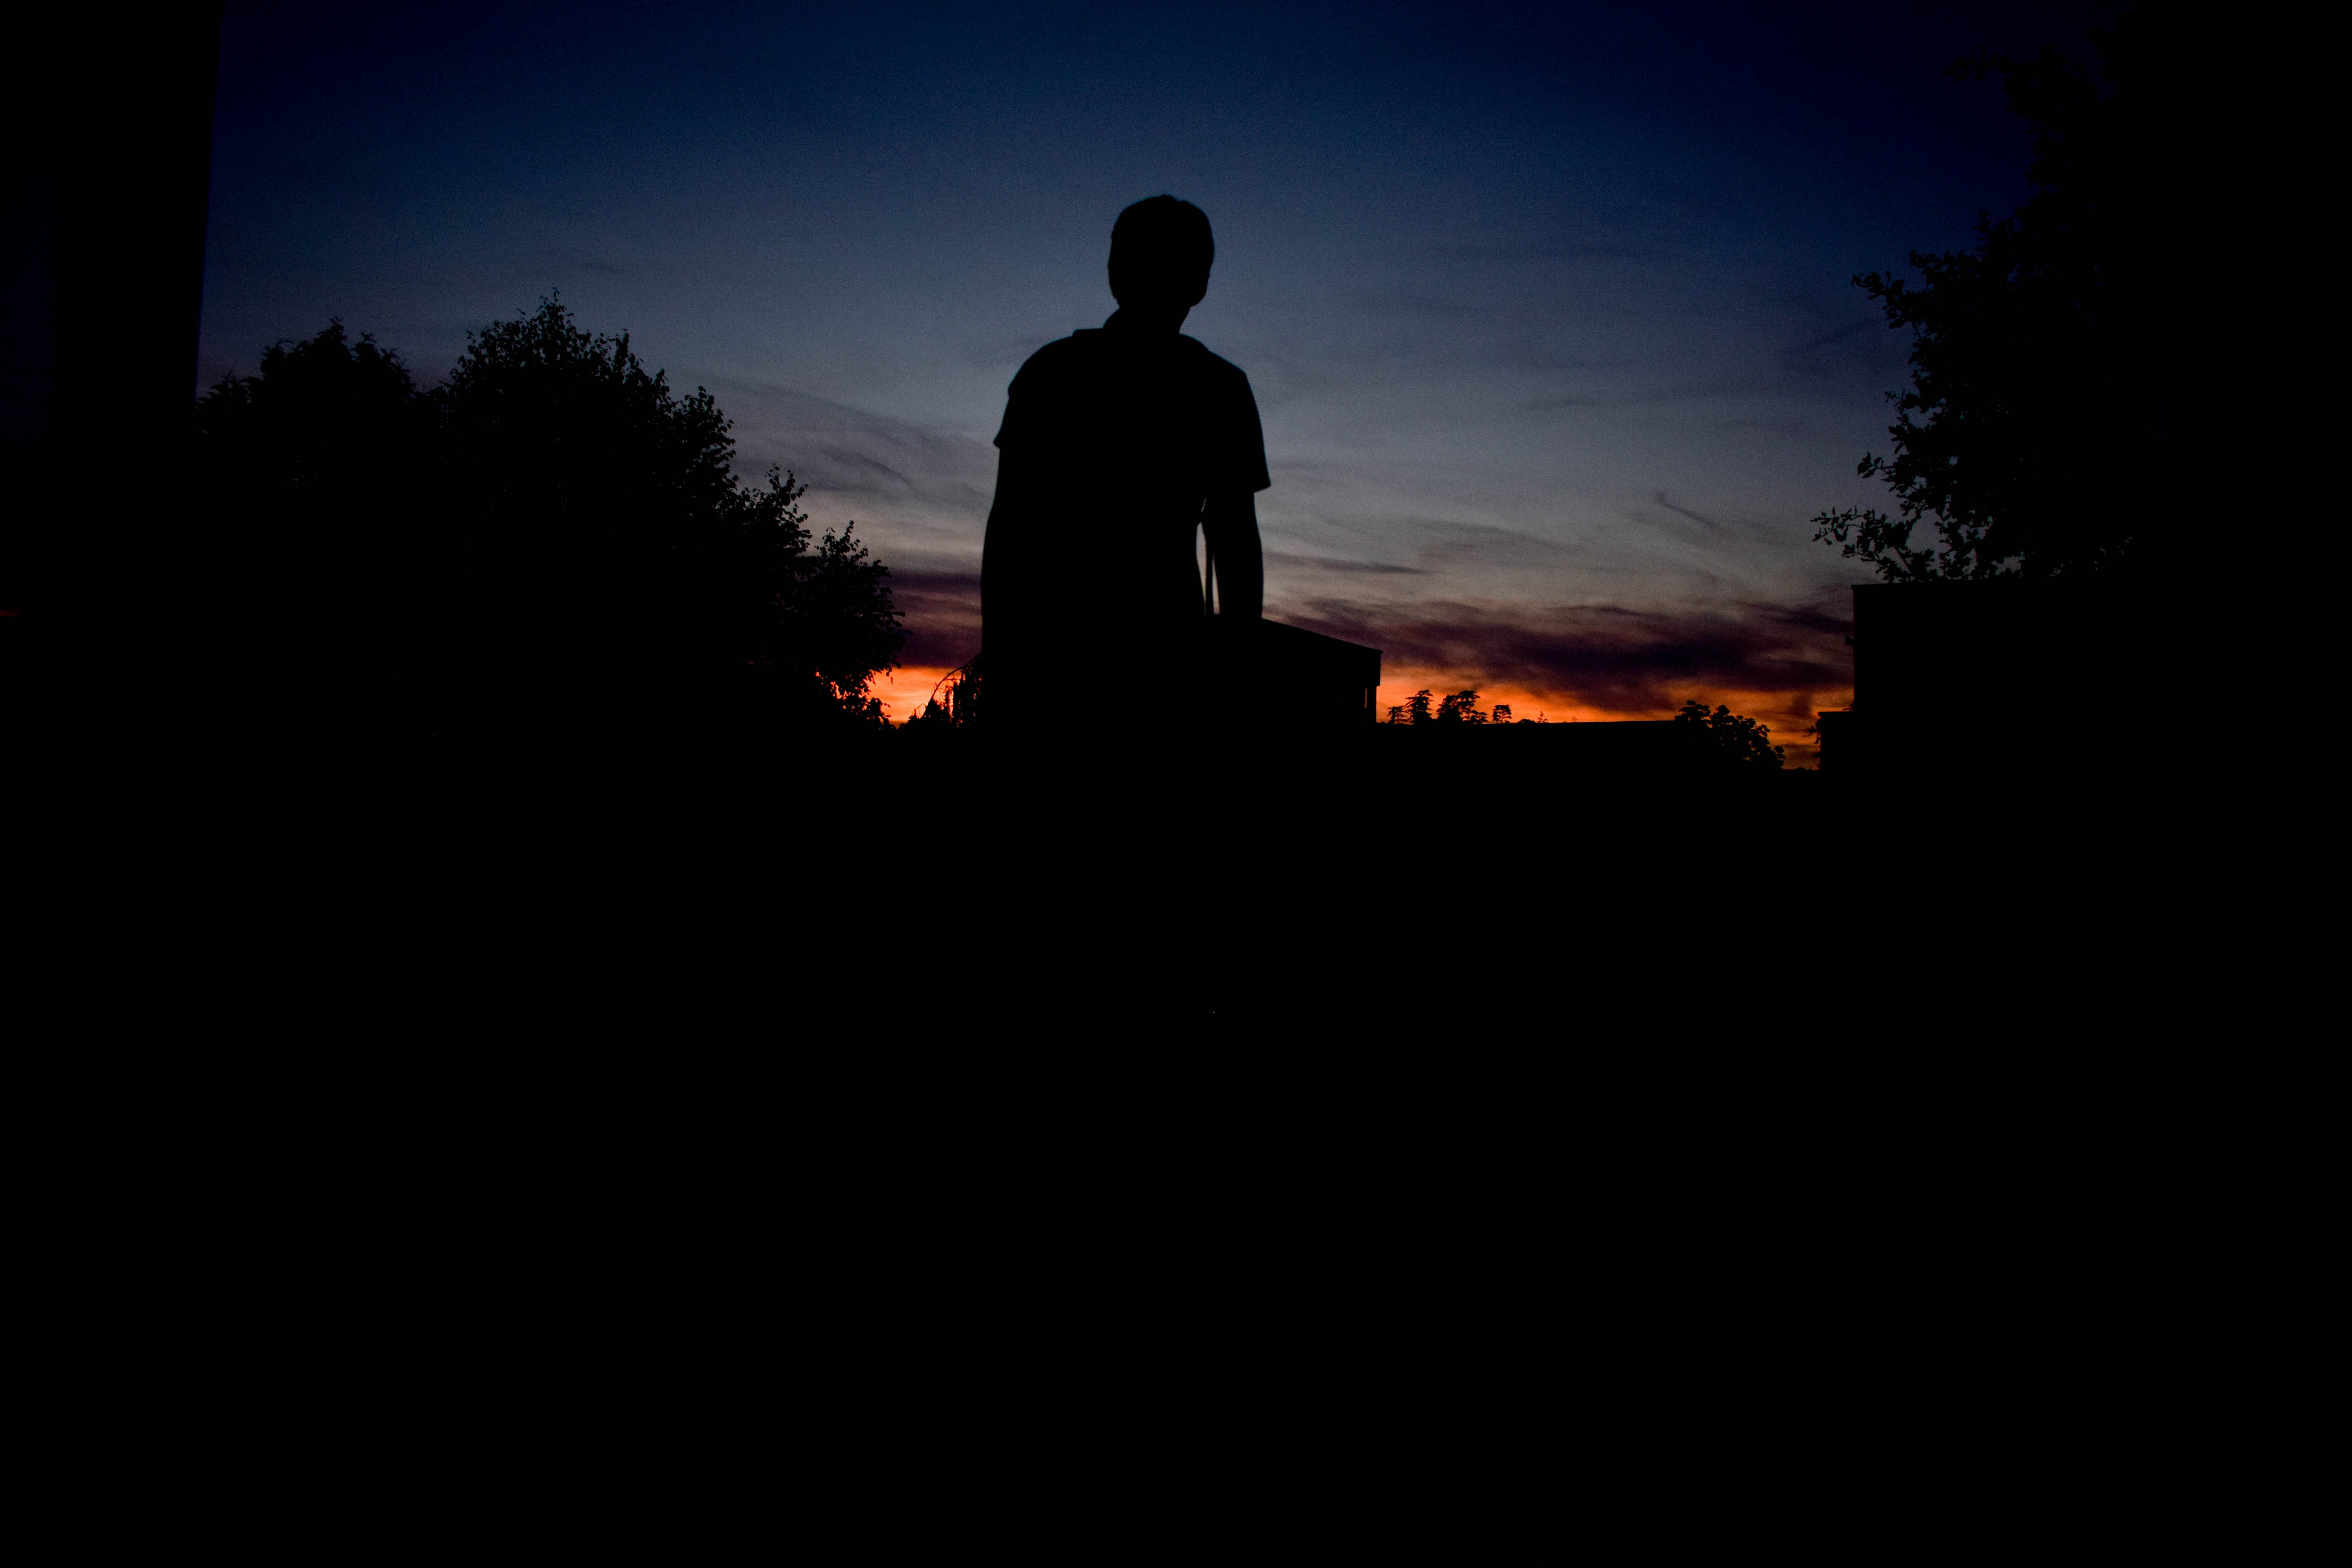 A man and trees are cast in silhouette against the end of a sunset and twilight sky in Zeewolde.